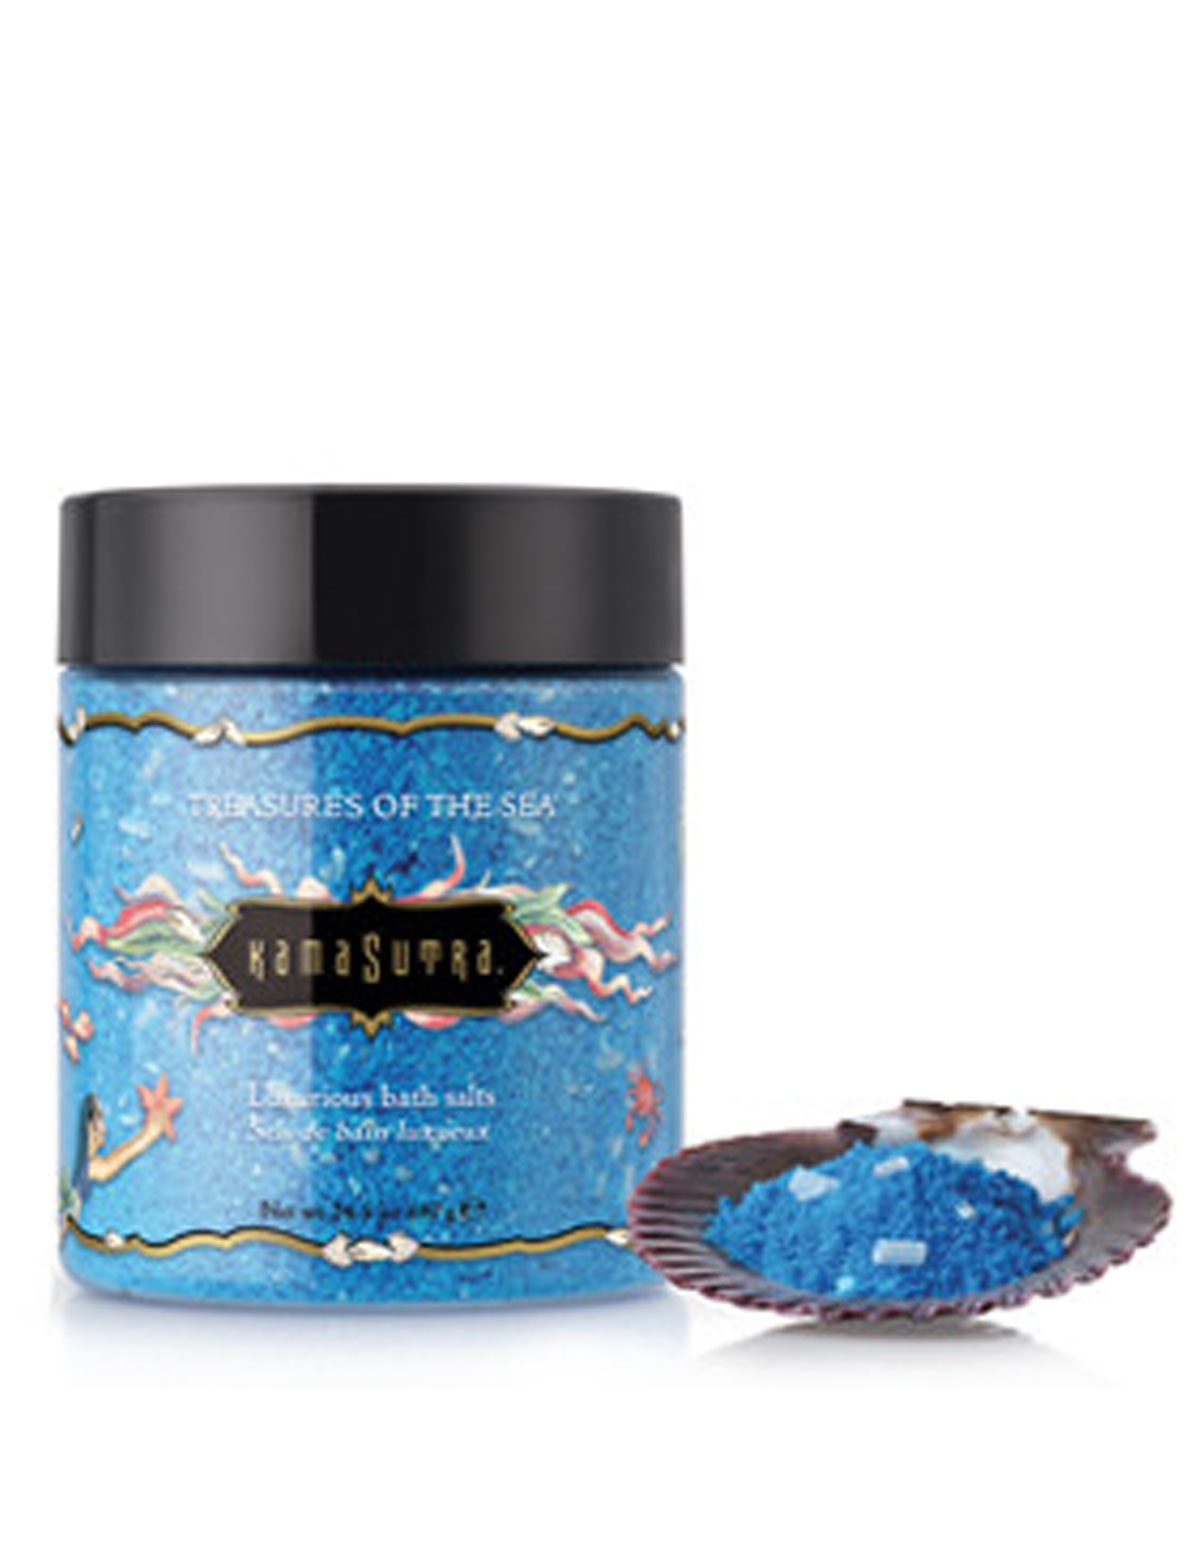 Treasure Of The Sea Bath Salt